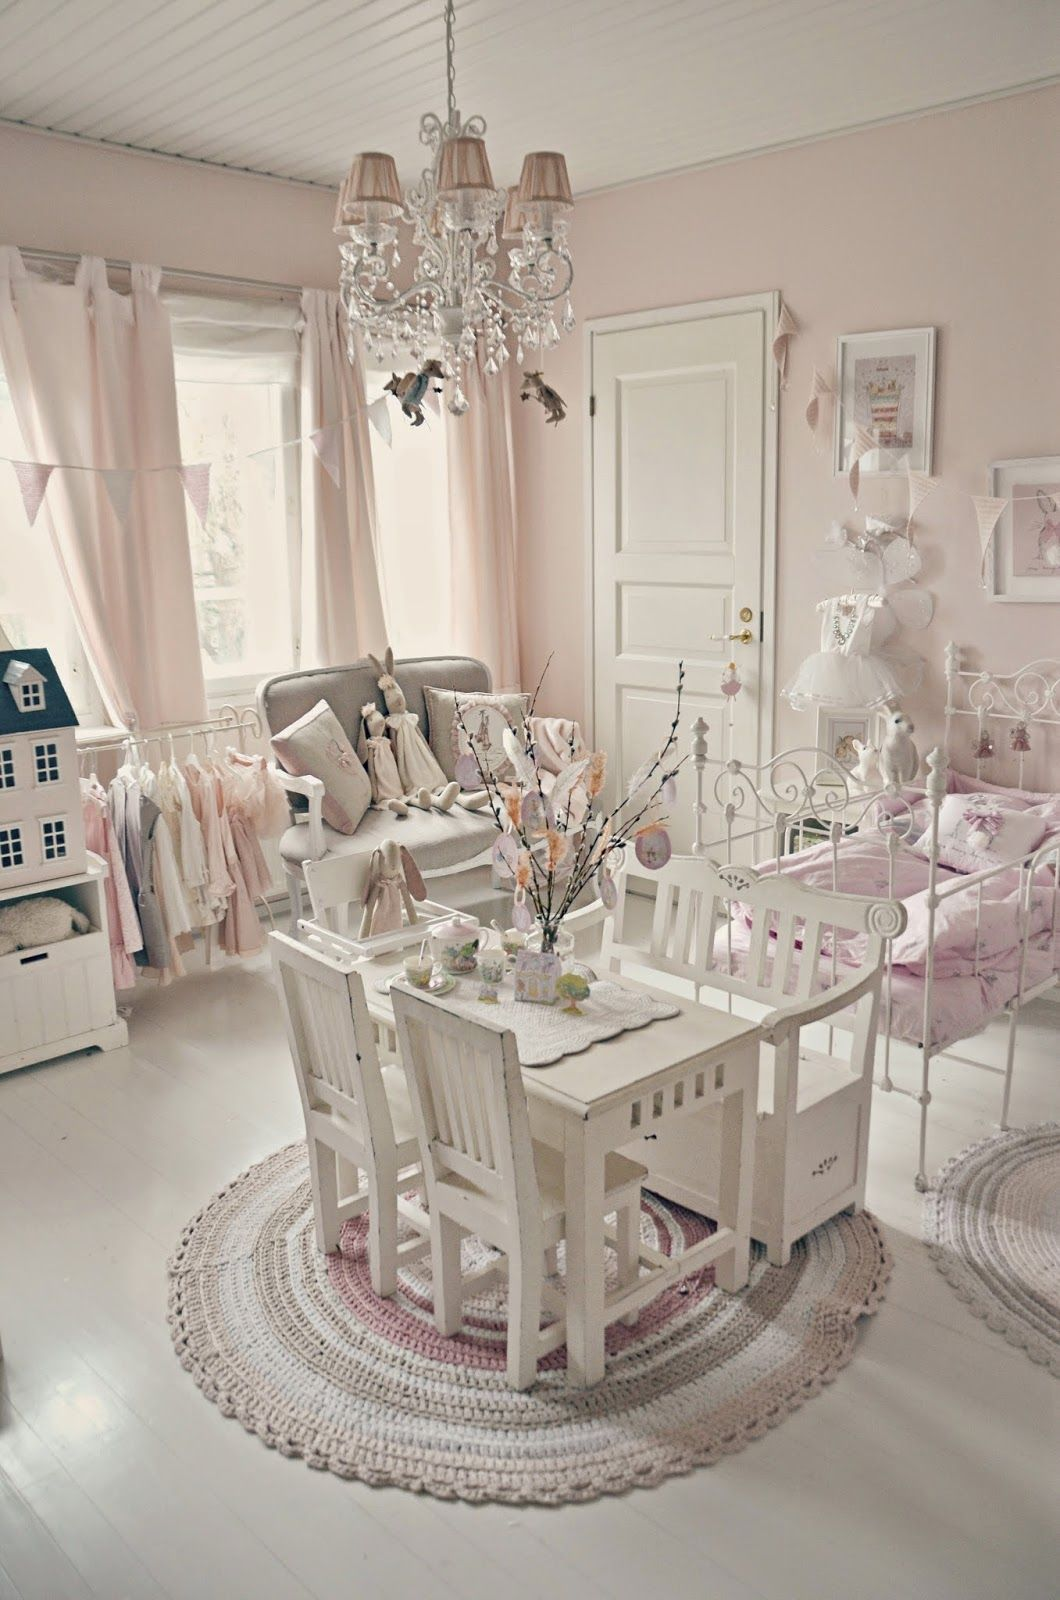 Girls Room: Love The Iron Bed! Even Tho This Is A Little Girls Room